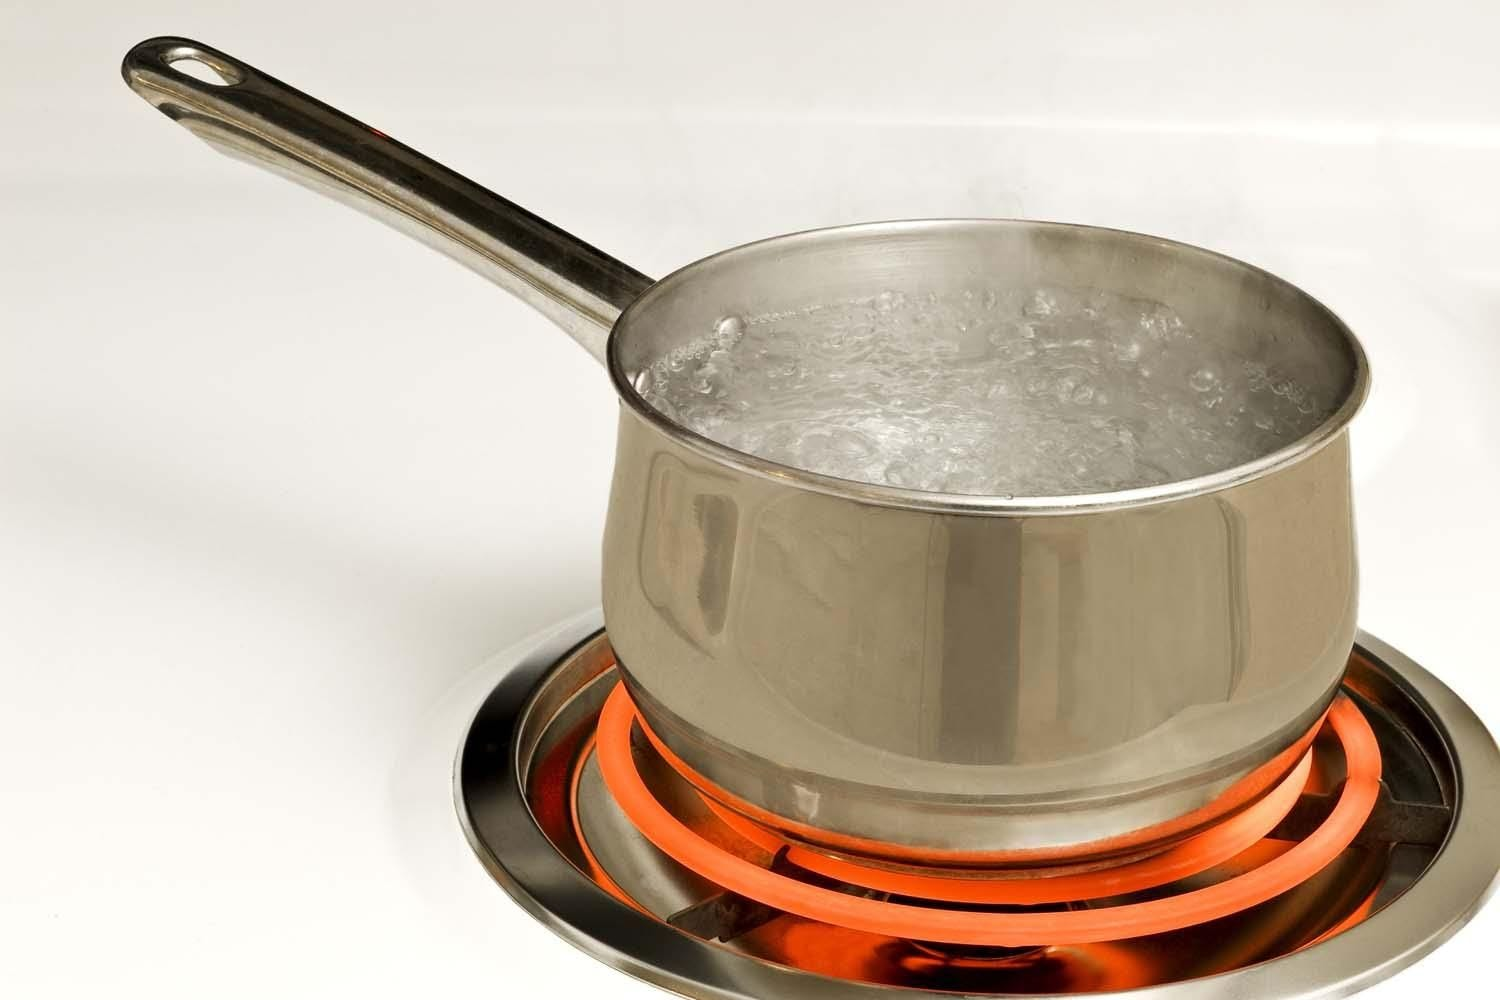 People in the city should boil any water intended for consumption for at least 5 minutes to kill any bacteria.